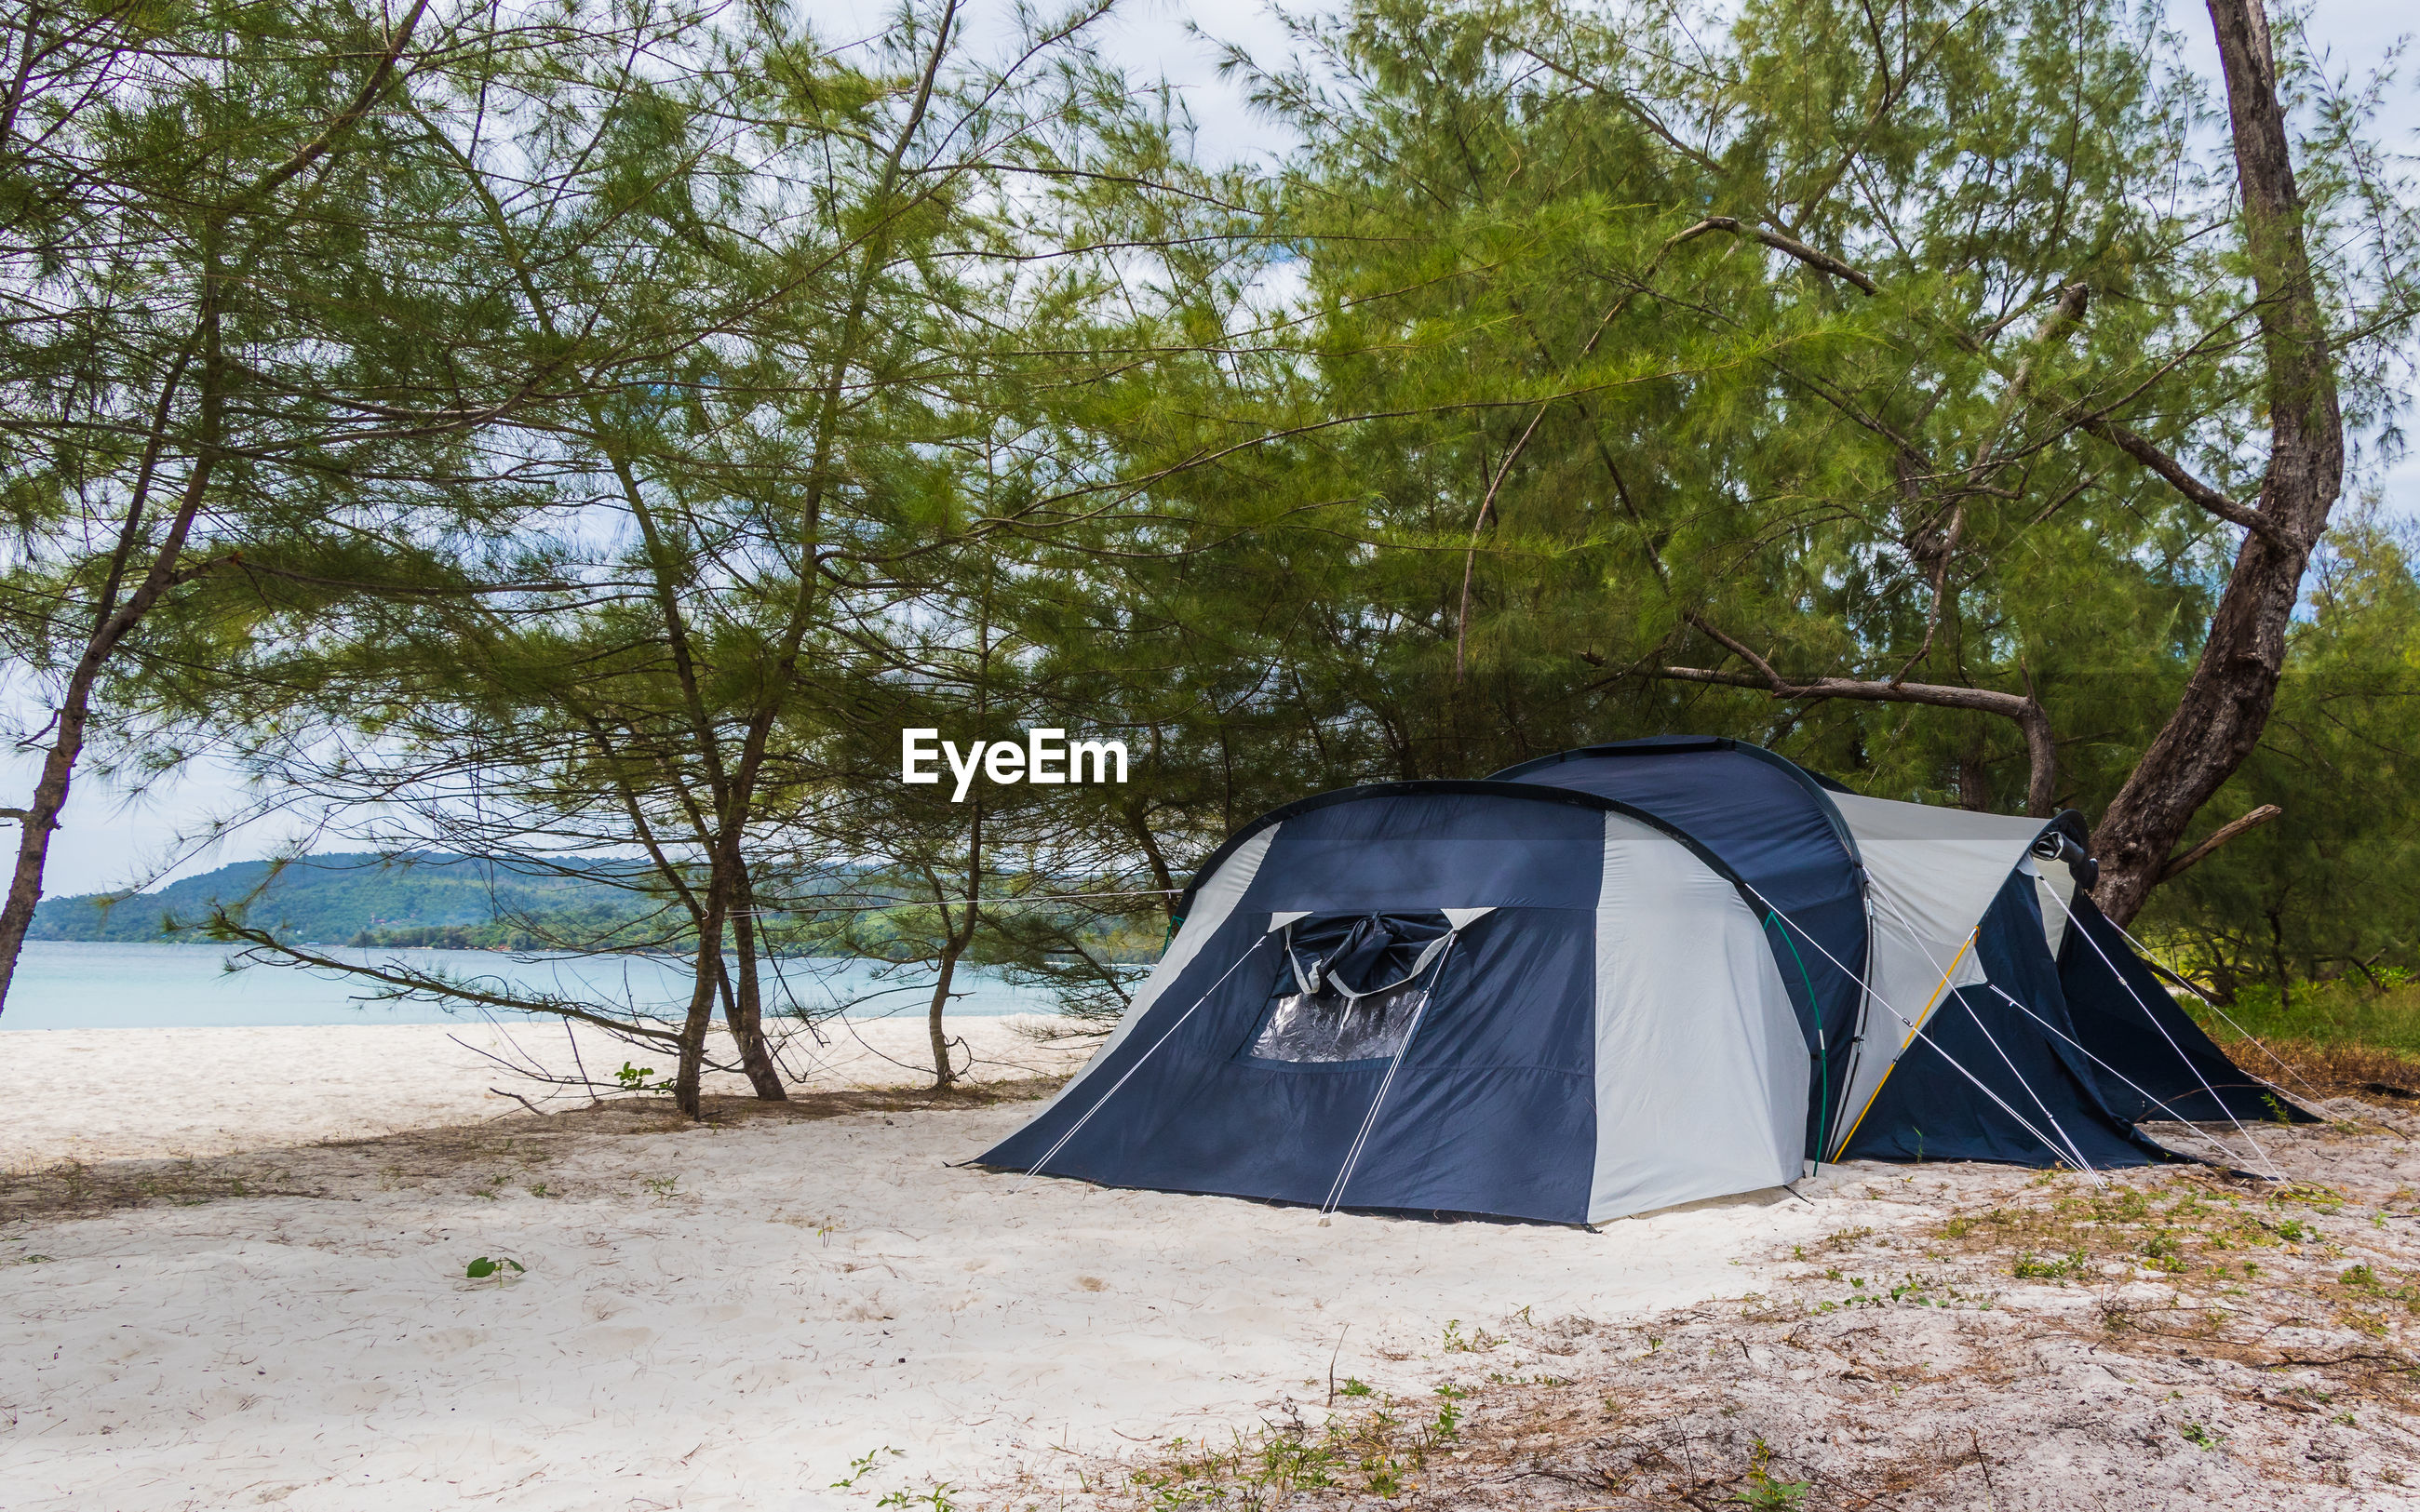 TENT ON FIELD AGAINST TREES AT BEACH